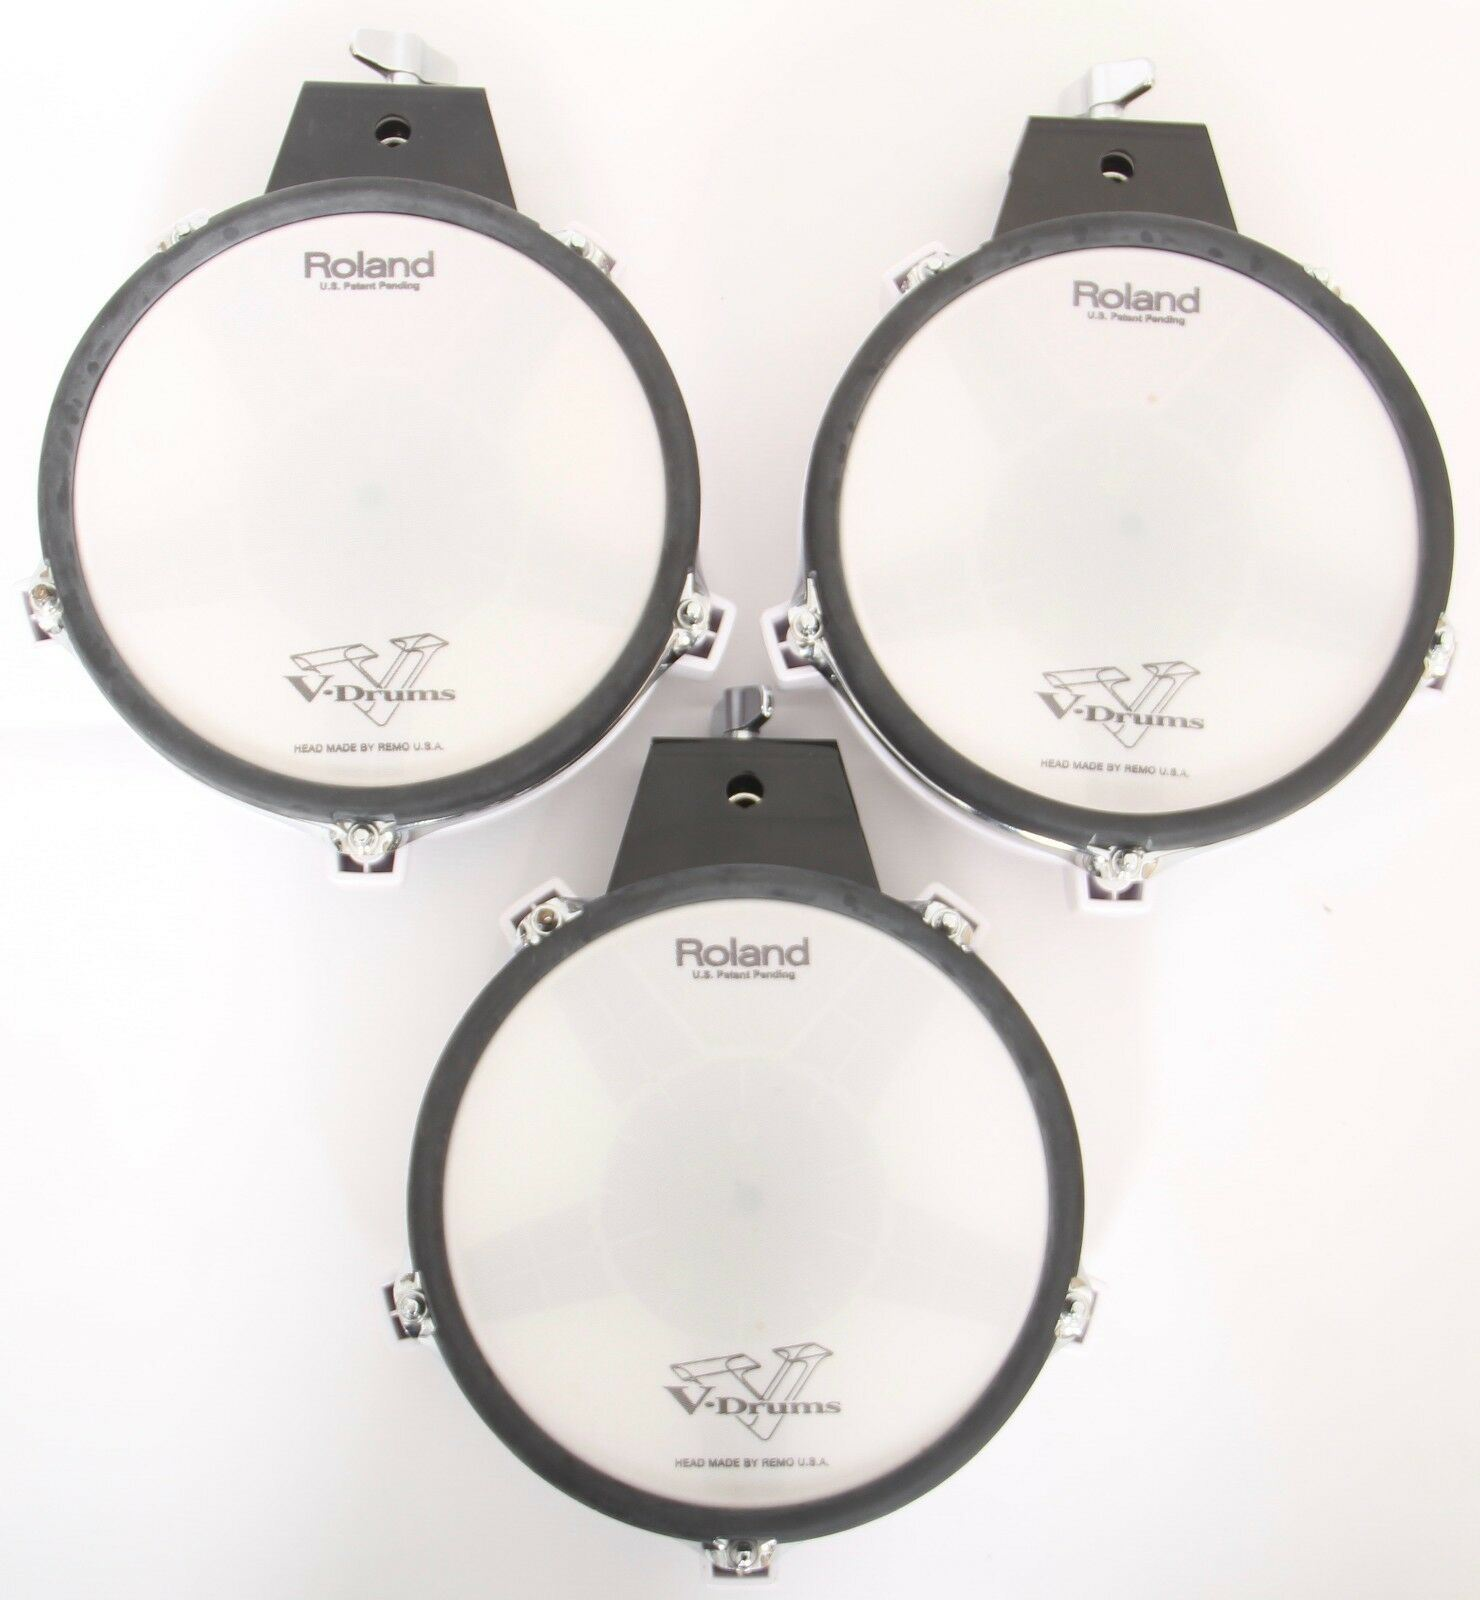 Roland PD-7 Electronic Drum Trigger Rubber Pads Free Shipping!